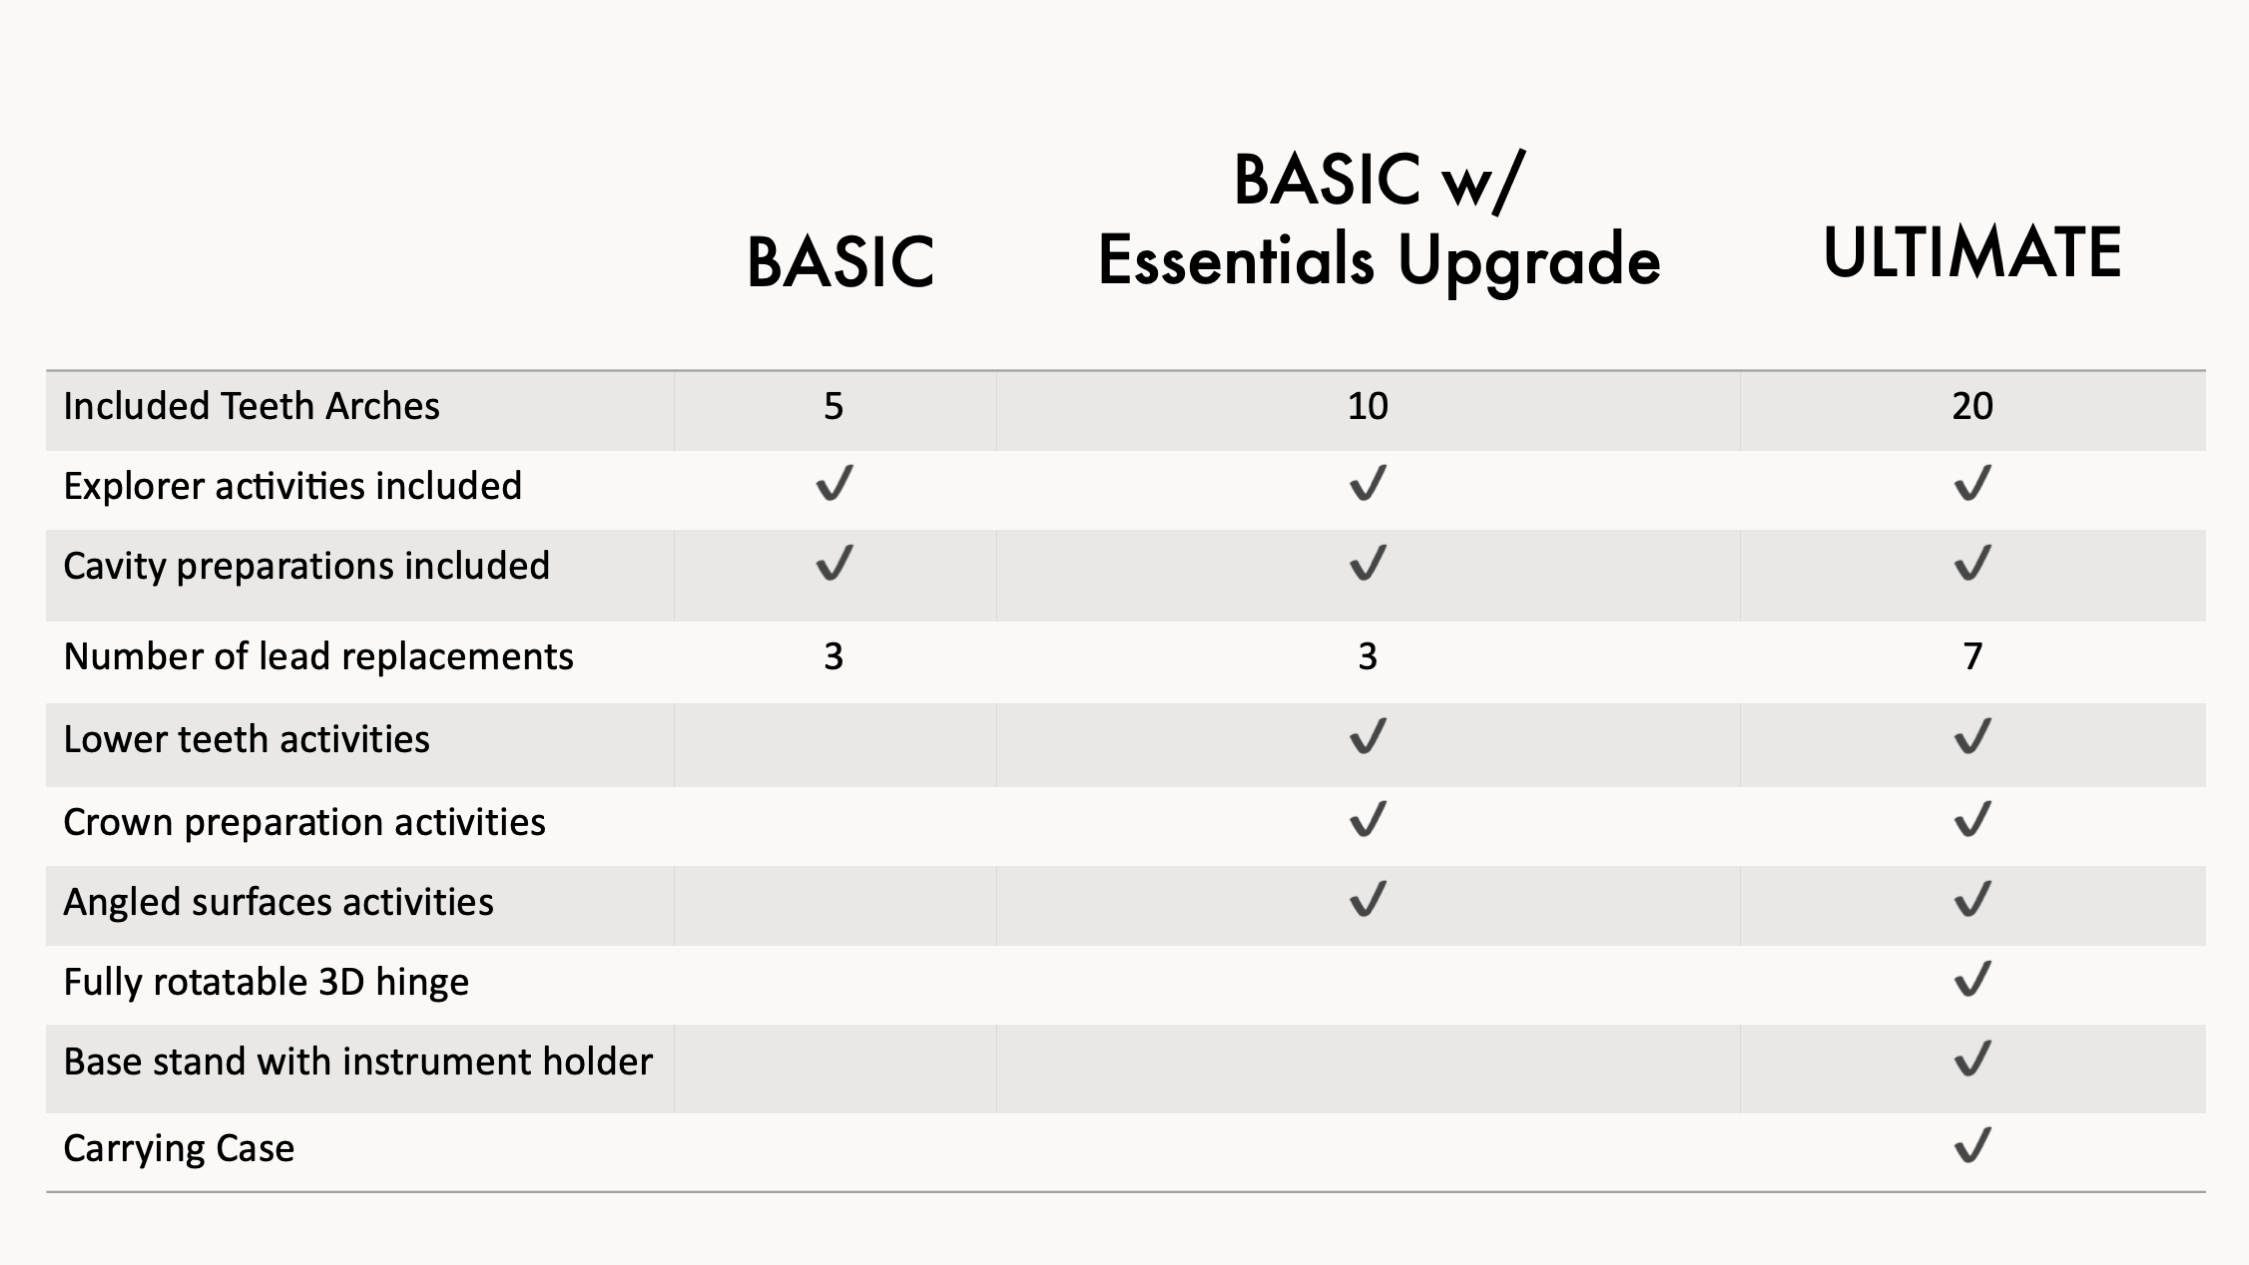 Essentials Upgrade for BASIC Edition